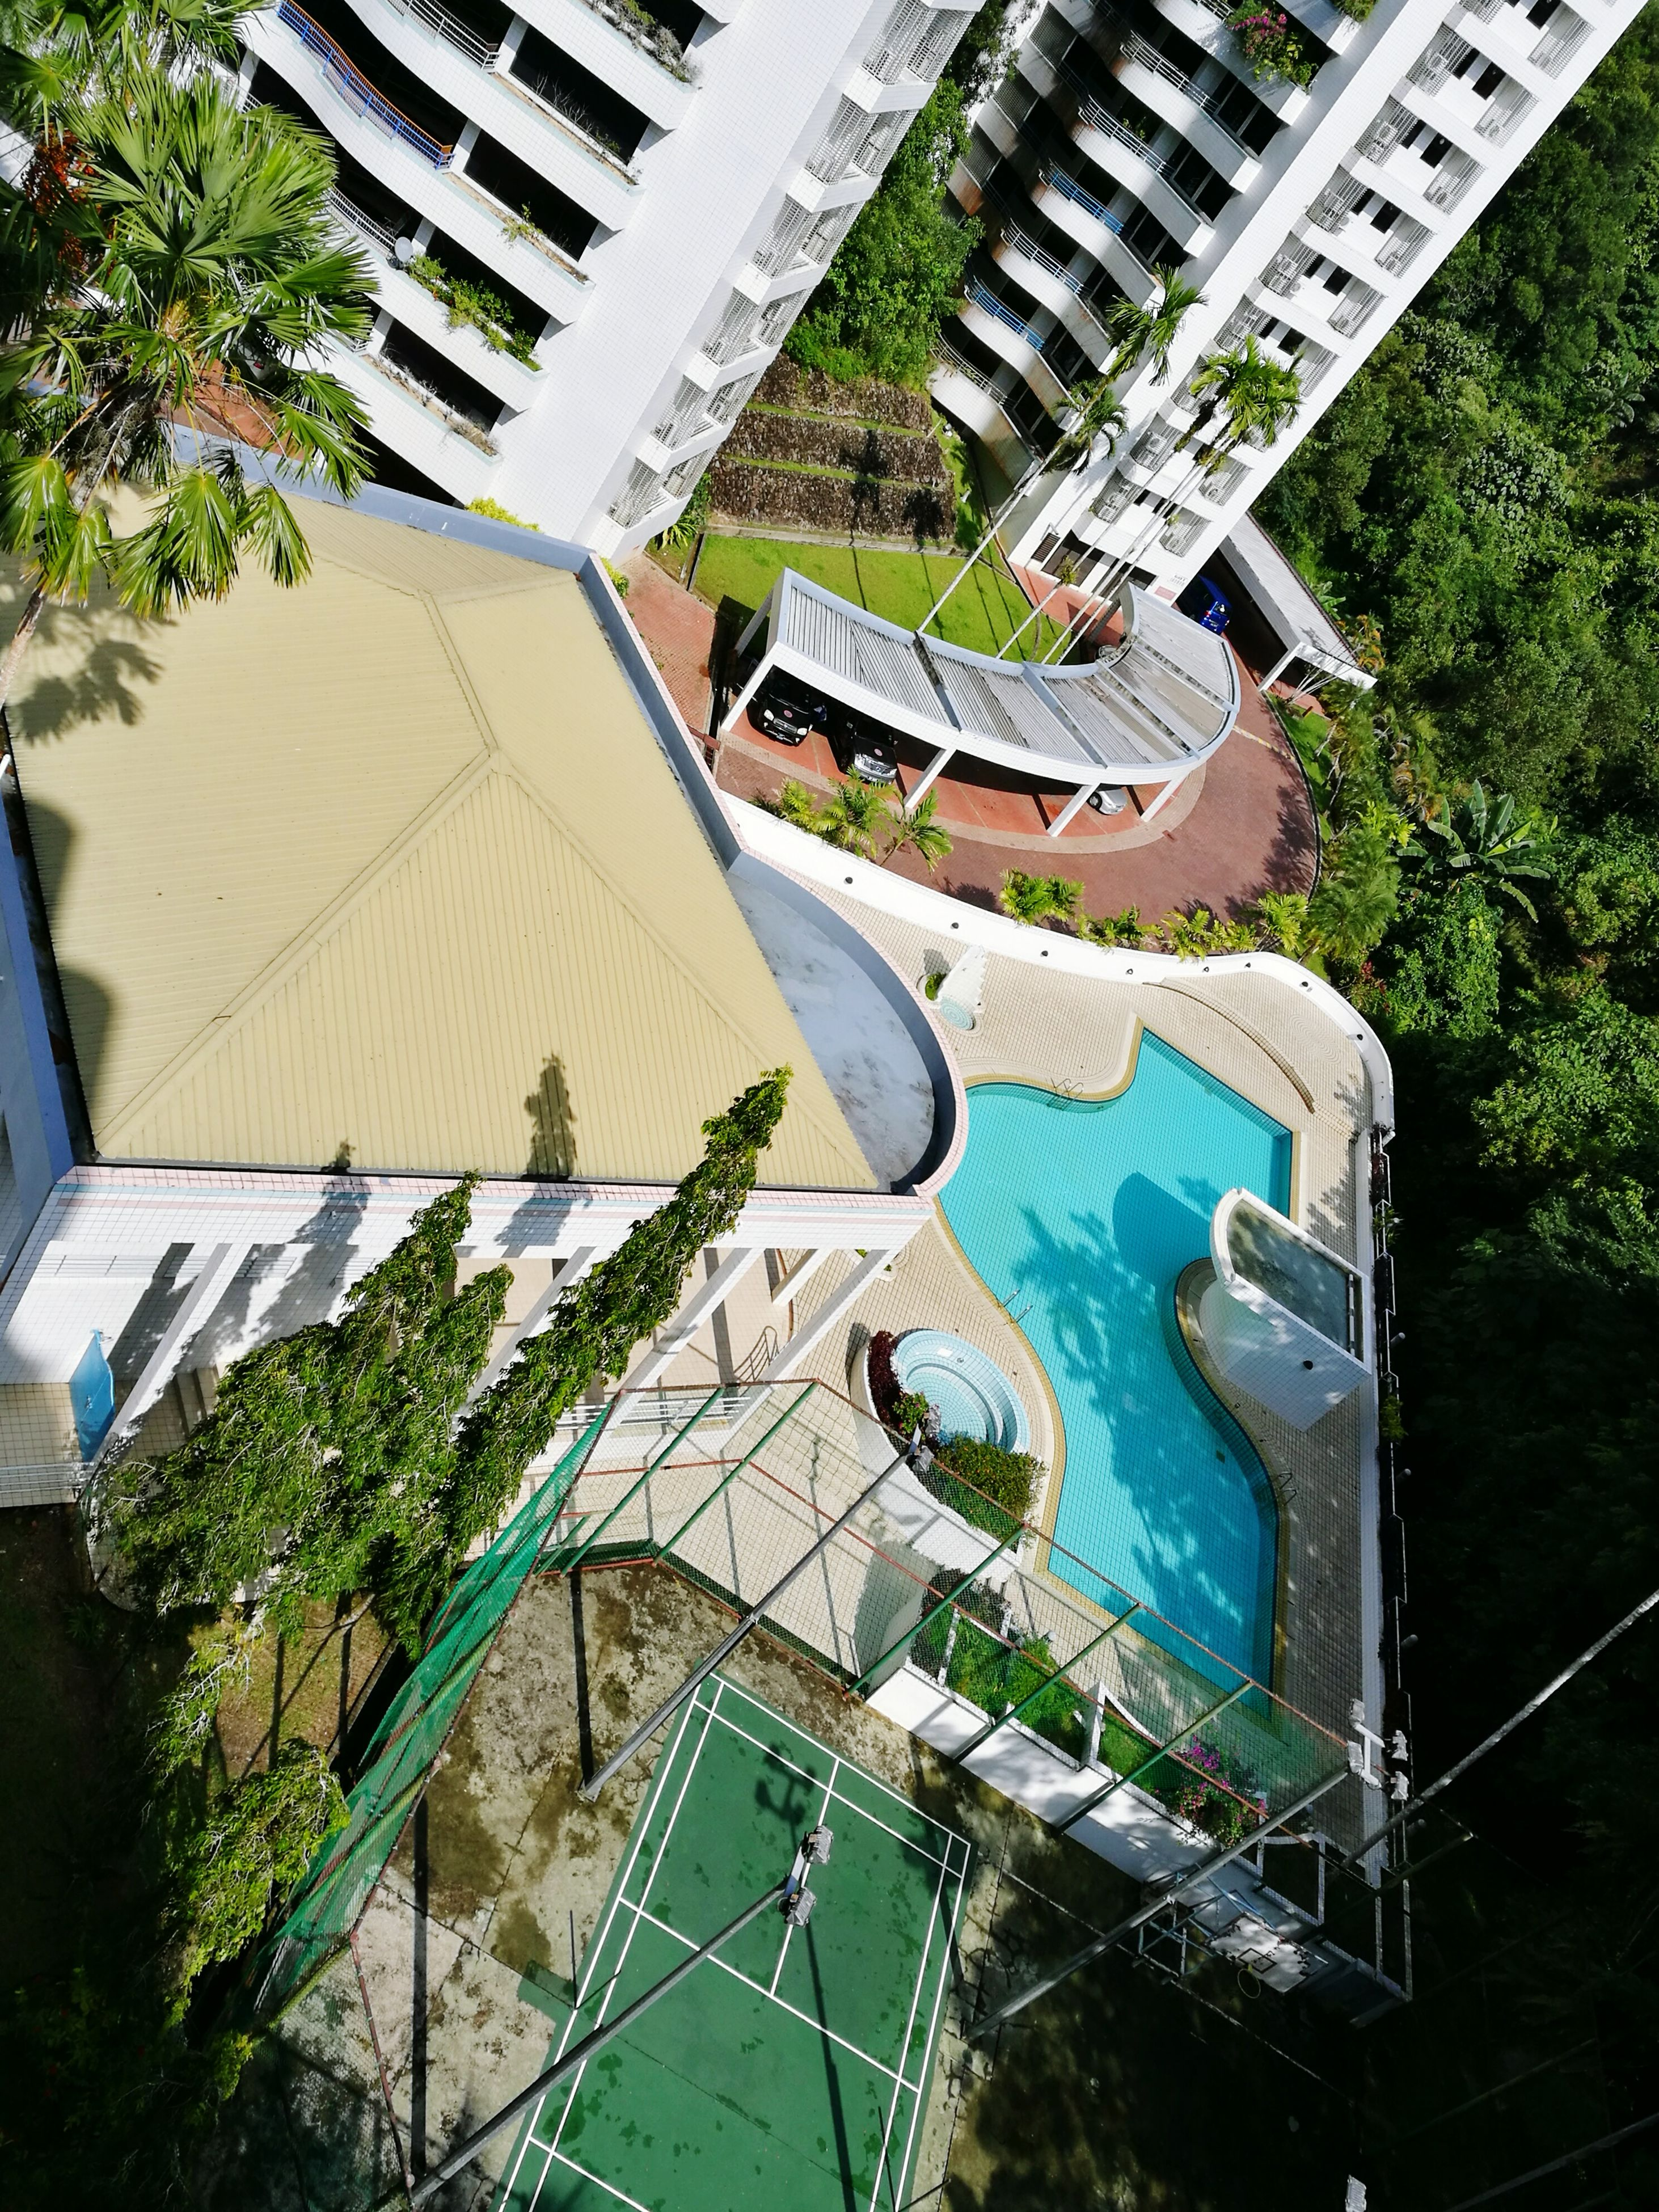 building exterior, architecture, built structure, swimming pool, high angle view, outdoors, water, tree, day, no people, skateboard park, city